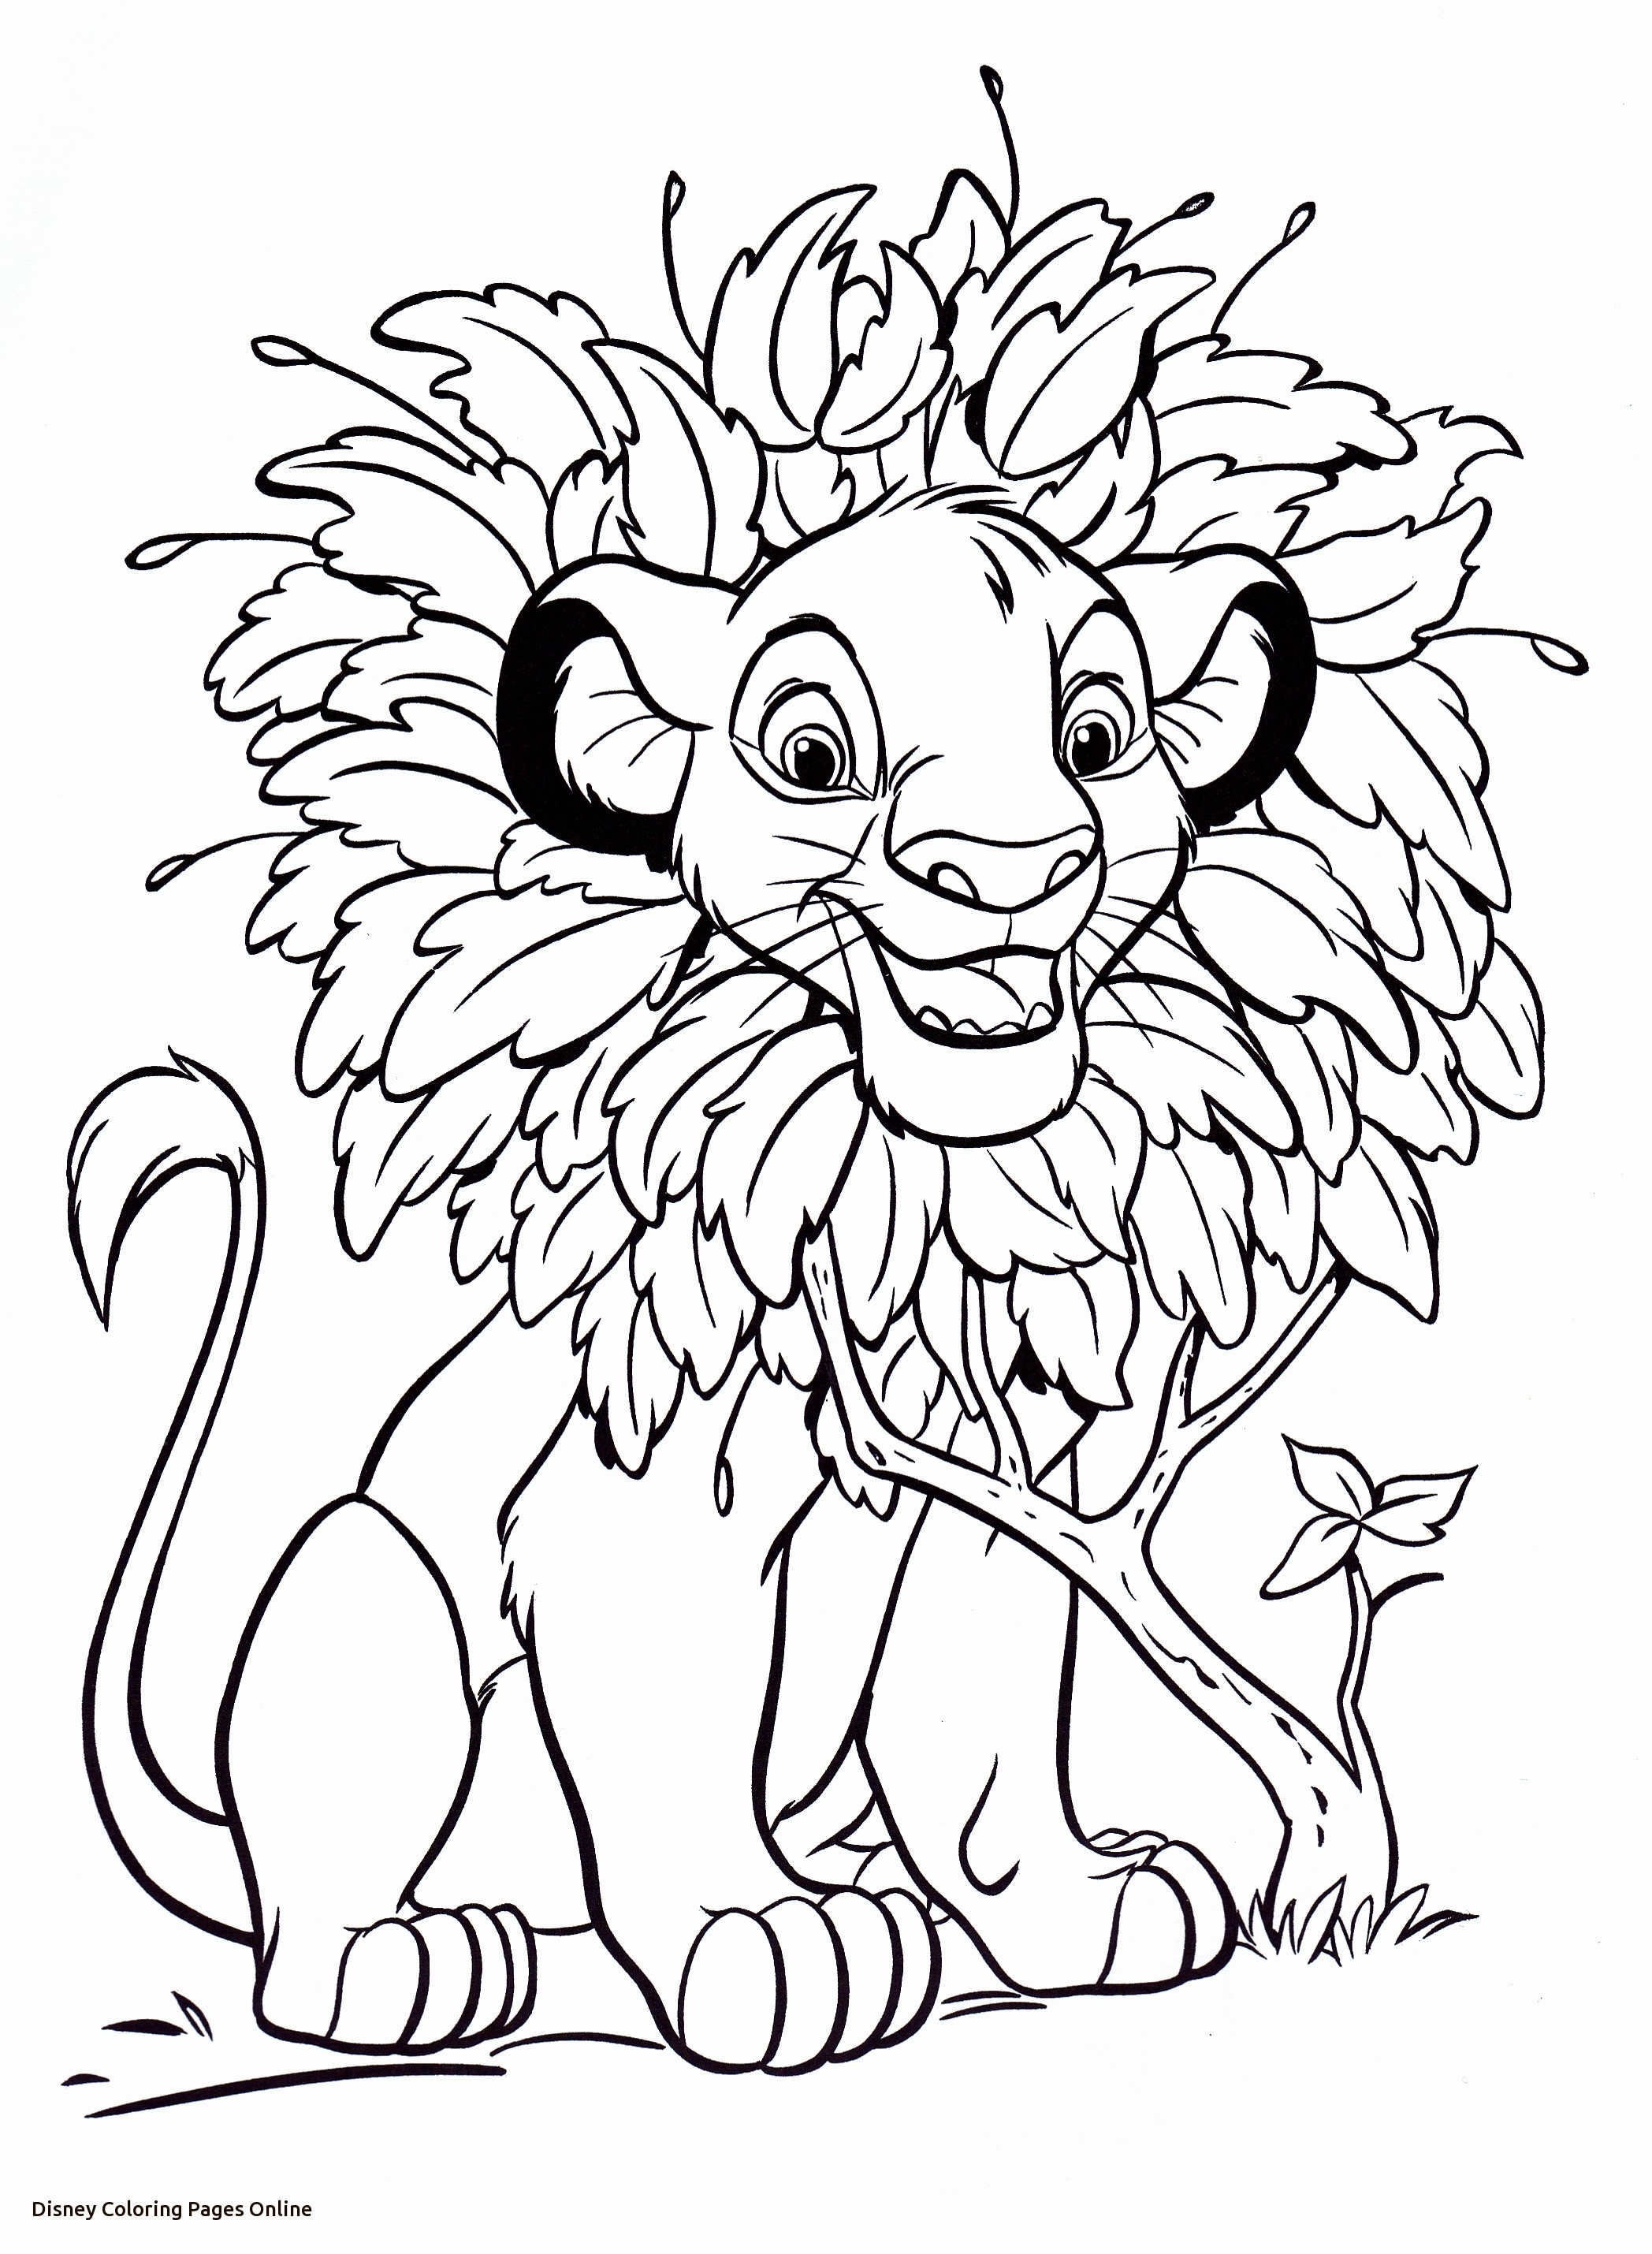 disney coloring pages - terraria boss coloring pages sketch coloring page with terraria coloring pages